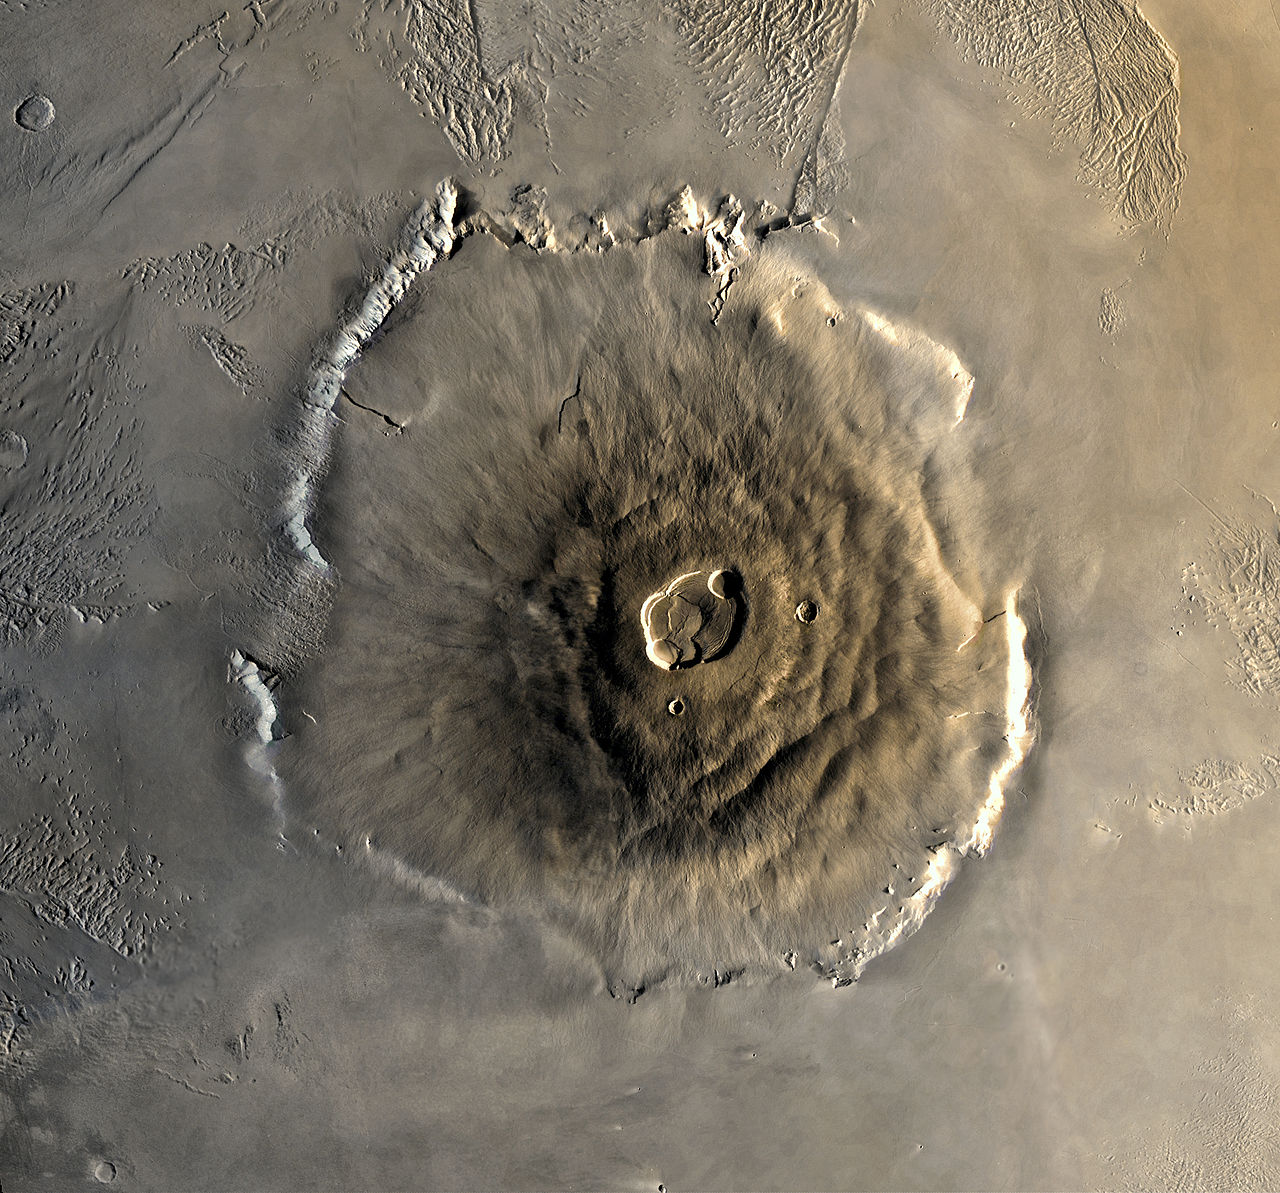 Image of Martian Volcano Olympus Mons.